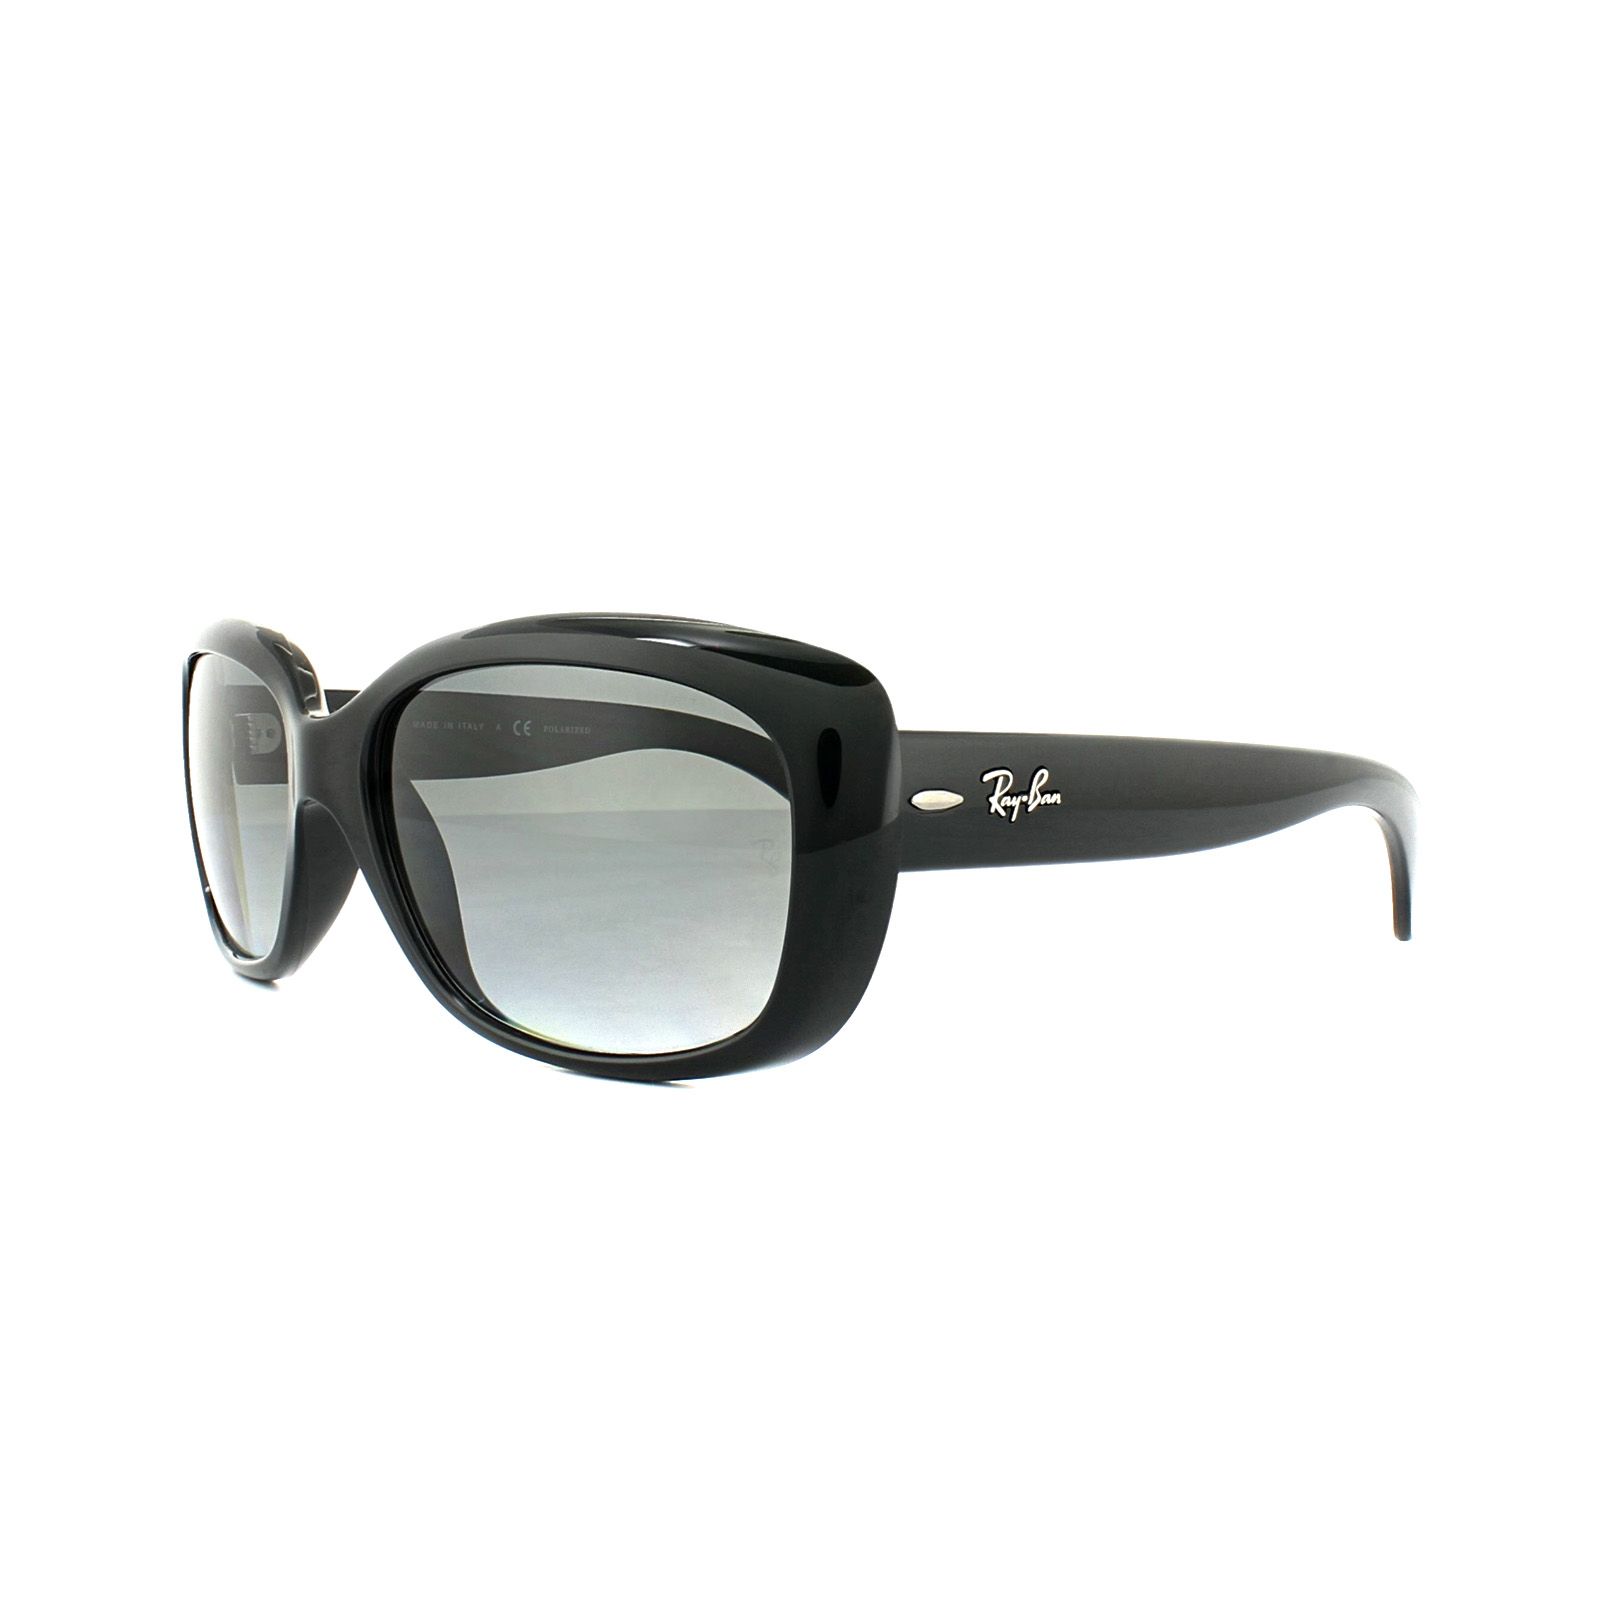 56e604aa100 Details about Ray-Ban Sunglasses Jackie Ohh 4101 601 T3 Shiny Black Grey  Gradient Polarized